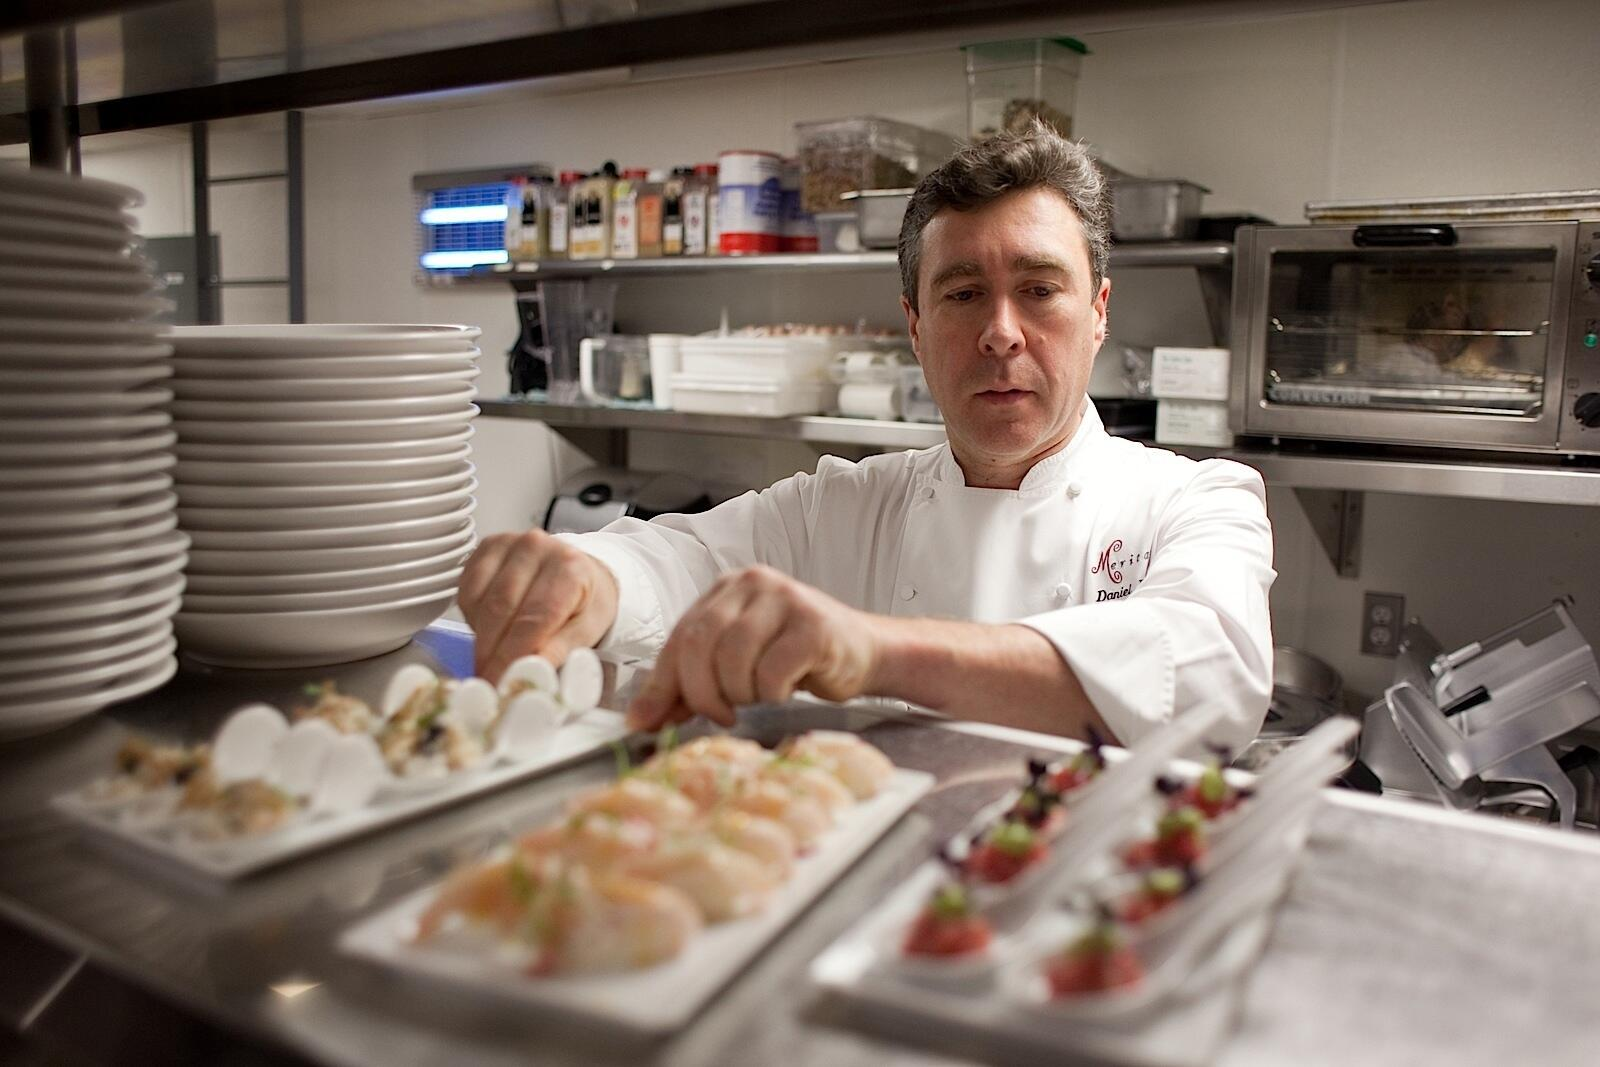 Chef Daniel Bruce in the kitchen observing hors d'oeuvres